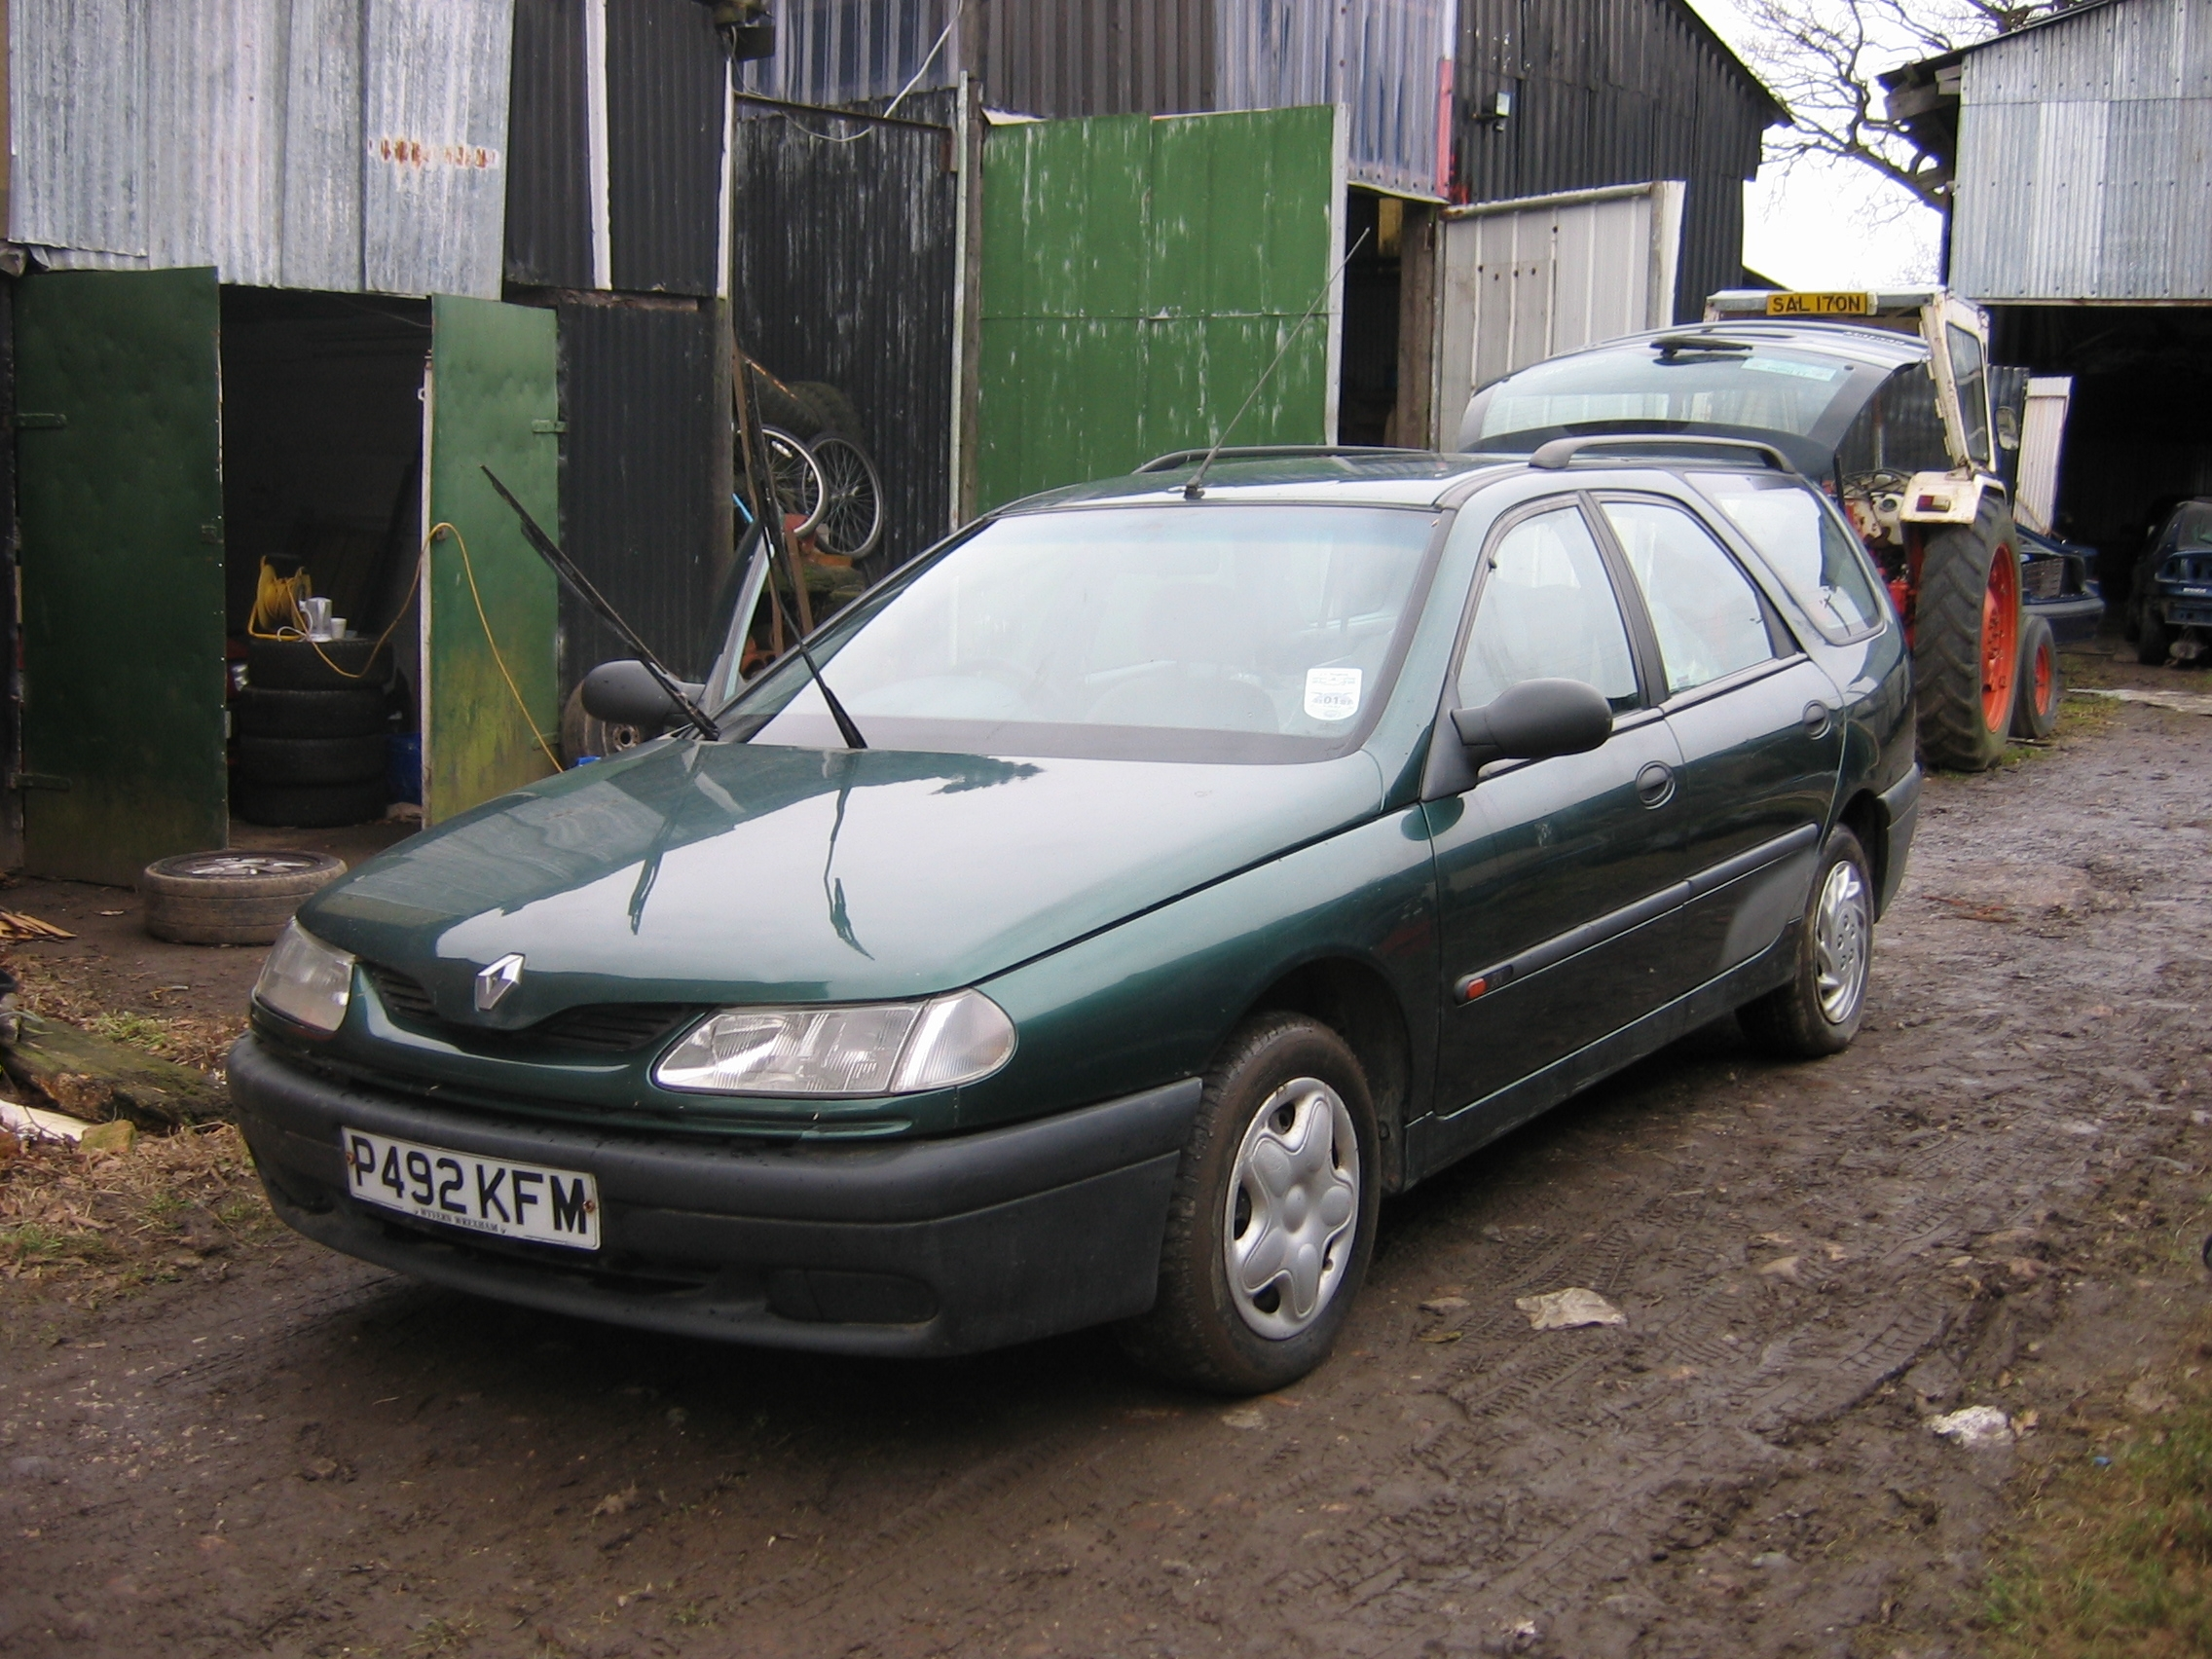 My Renault Laguna RN Estate